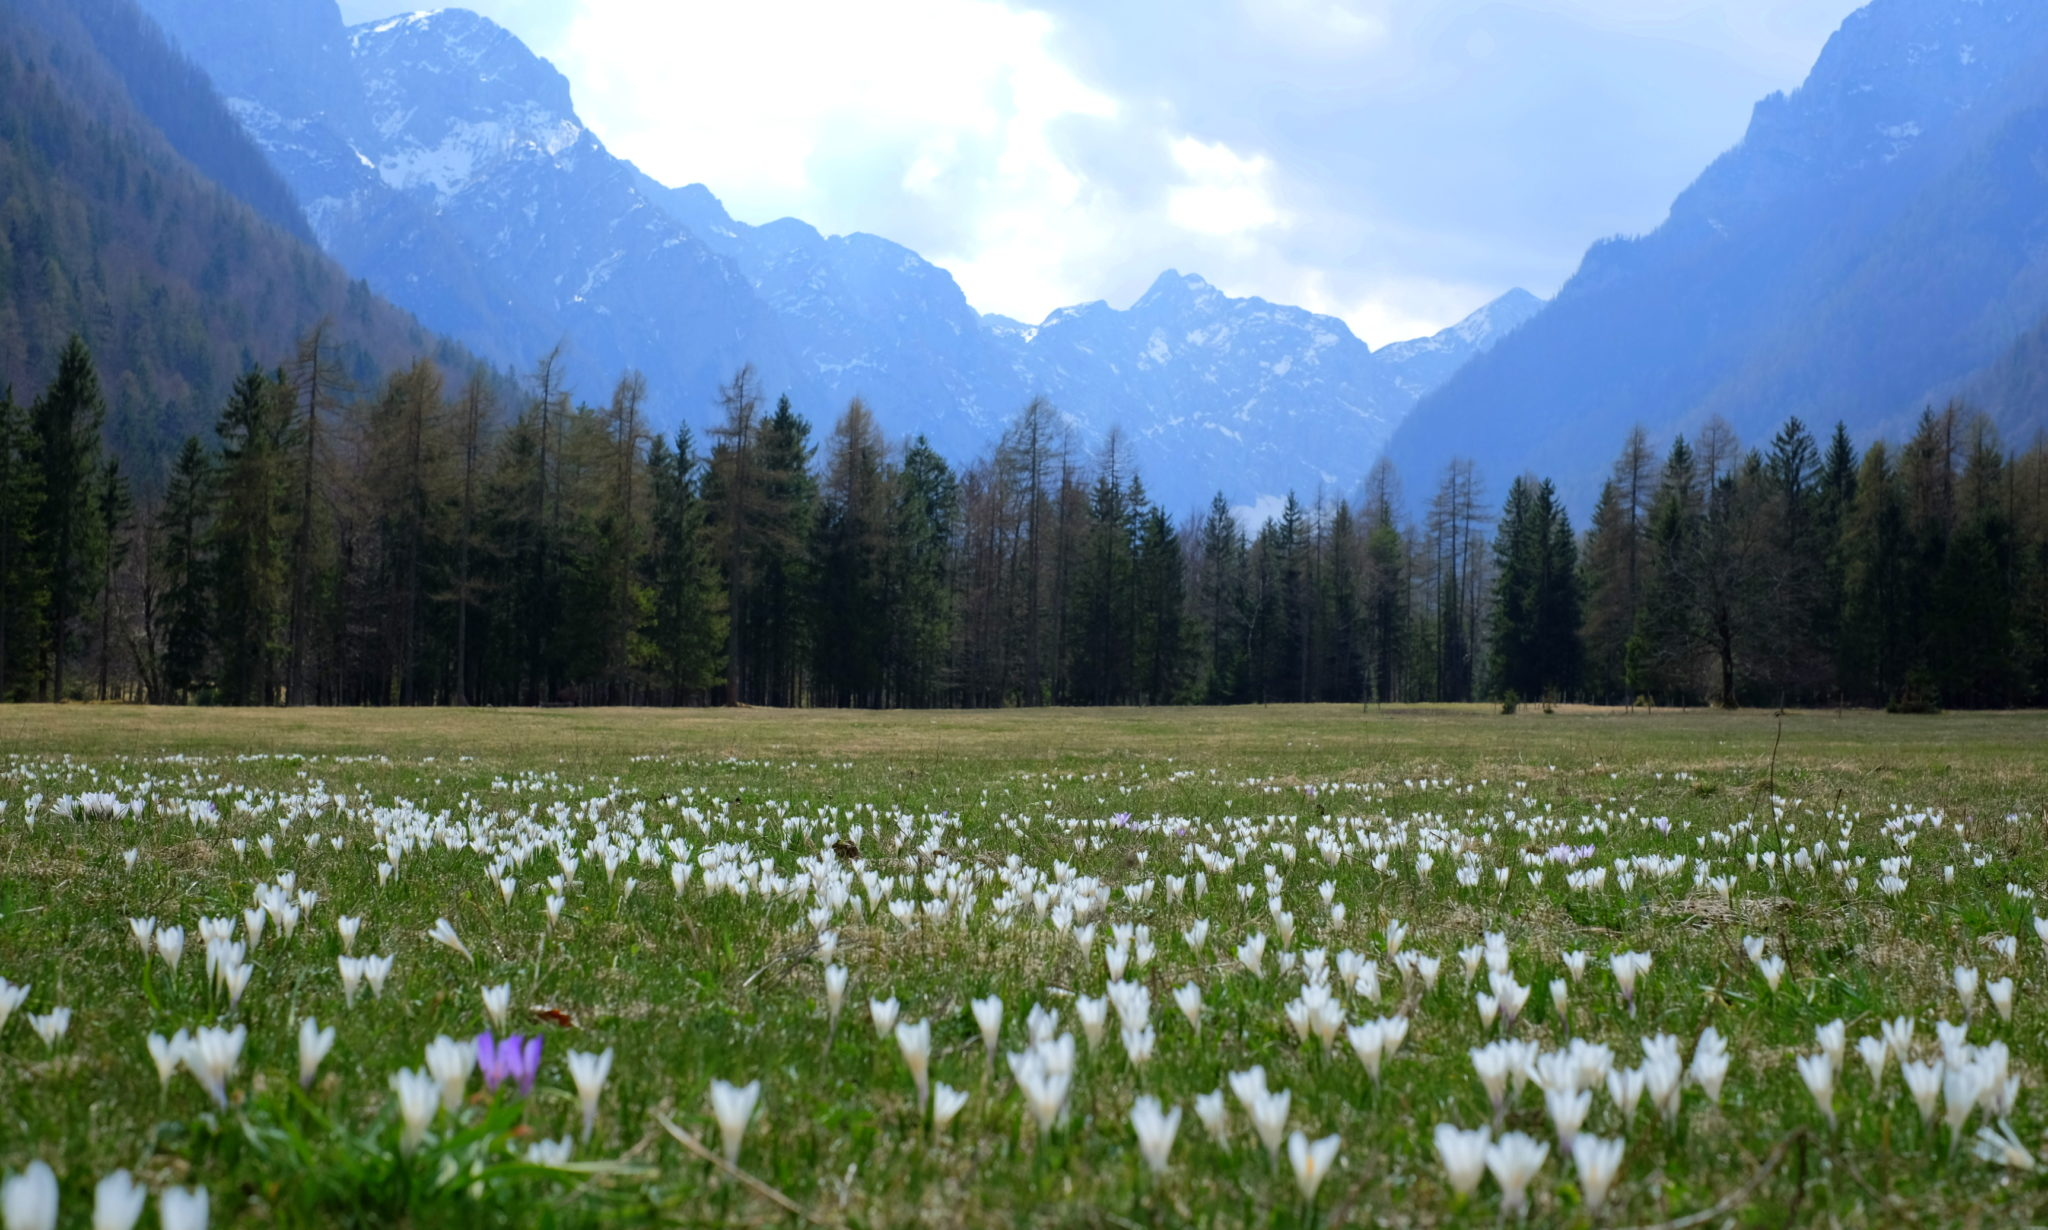 The Radovna Valley in spring with wild flowers